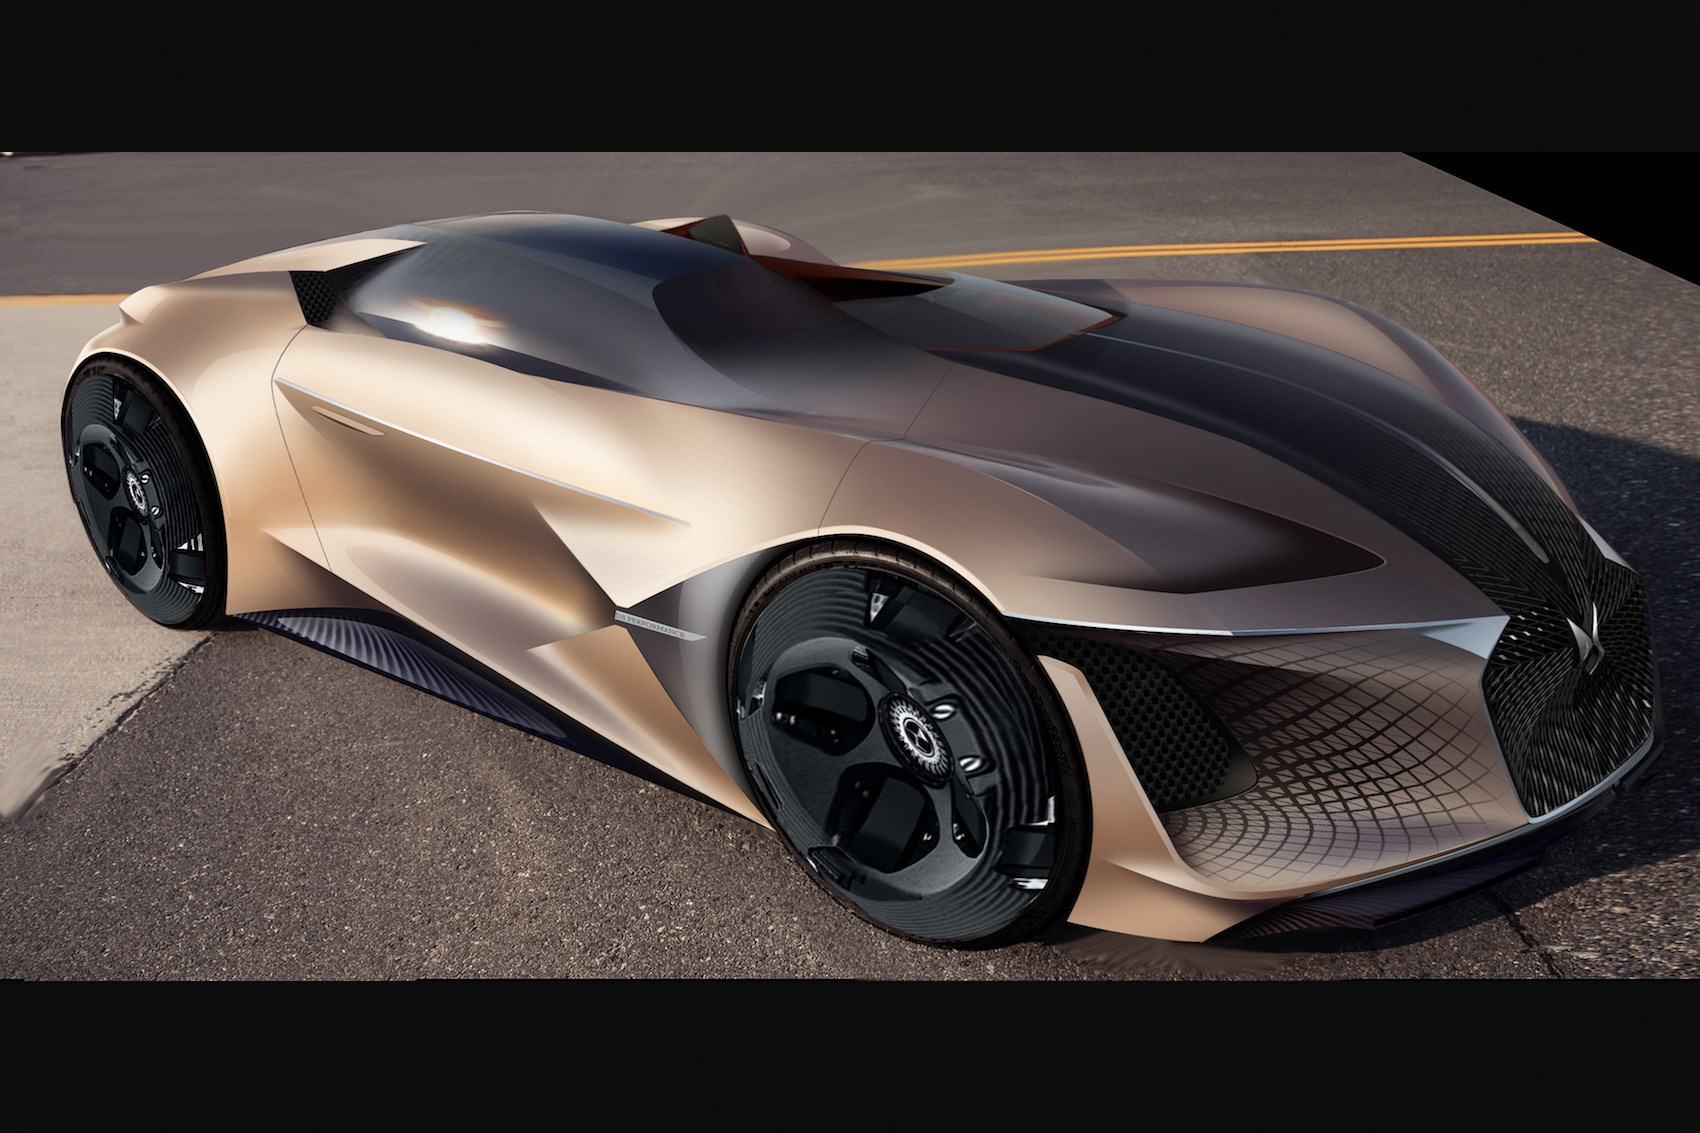 DS X E-Tense: French Take On 2035's Autonomous Future